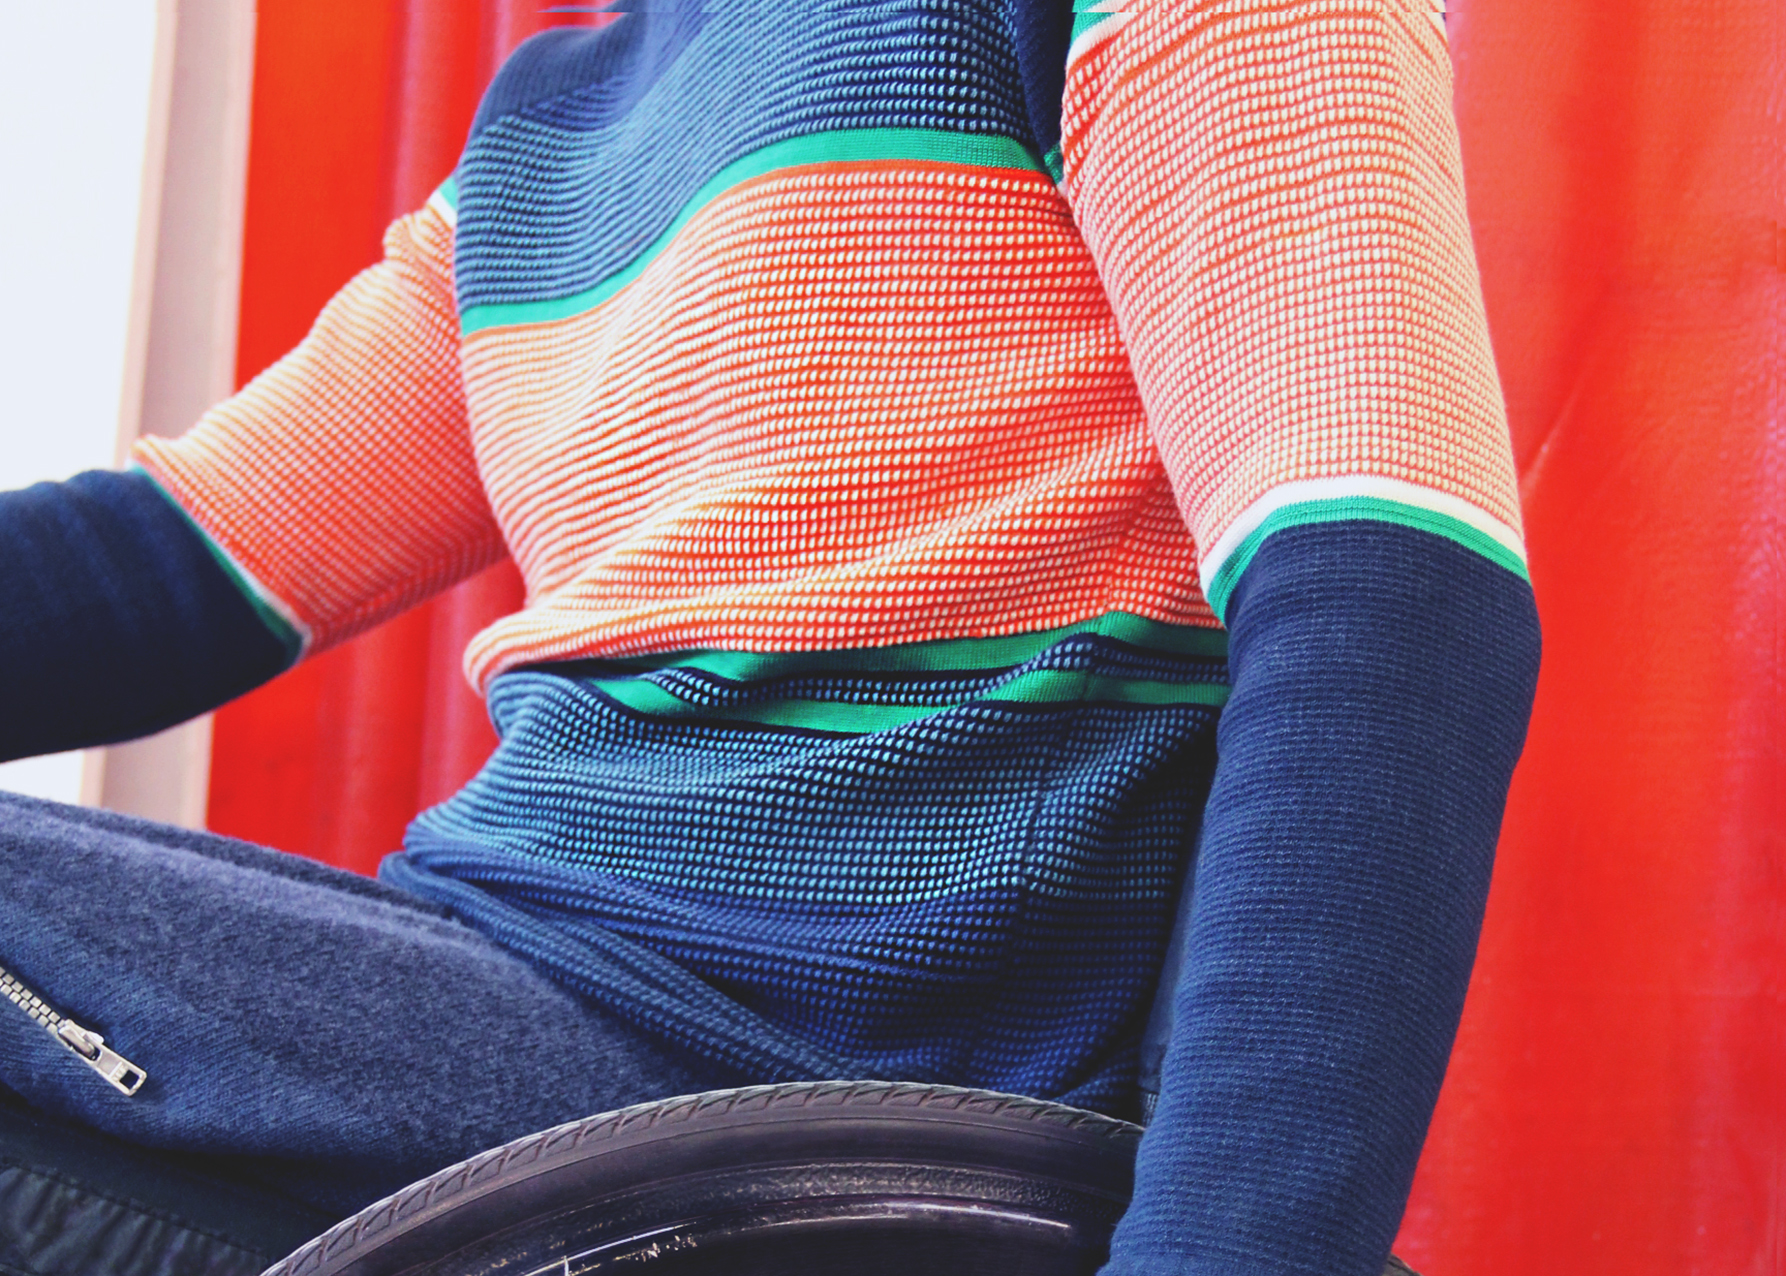 Clothes for sitting posture to change fashion for wheelchair users